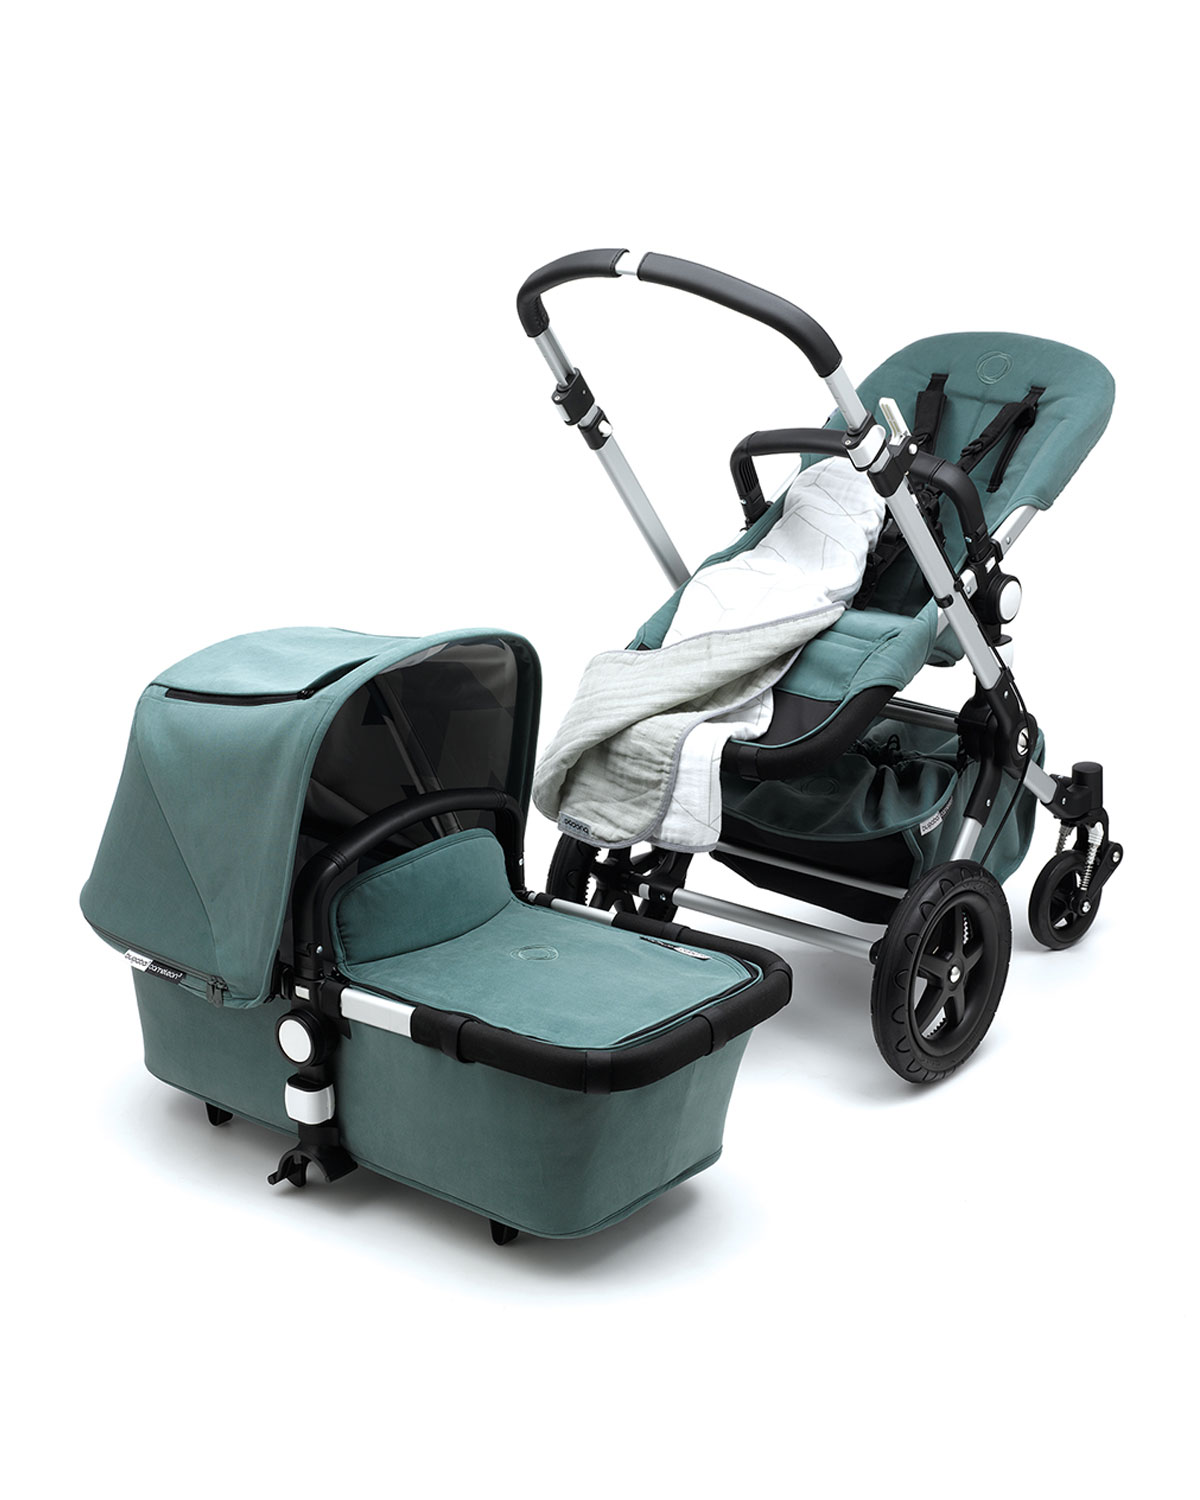 Bugaboo Limited Edition Cameleon³ Kite Complete Stroller, Balsam Green